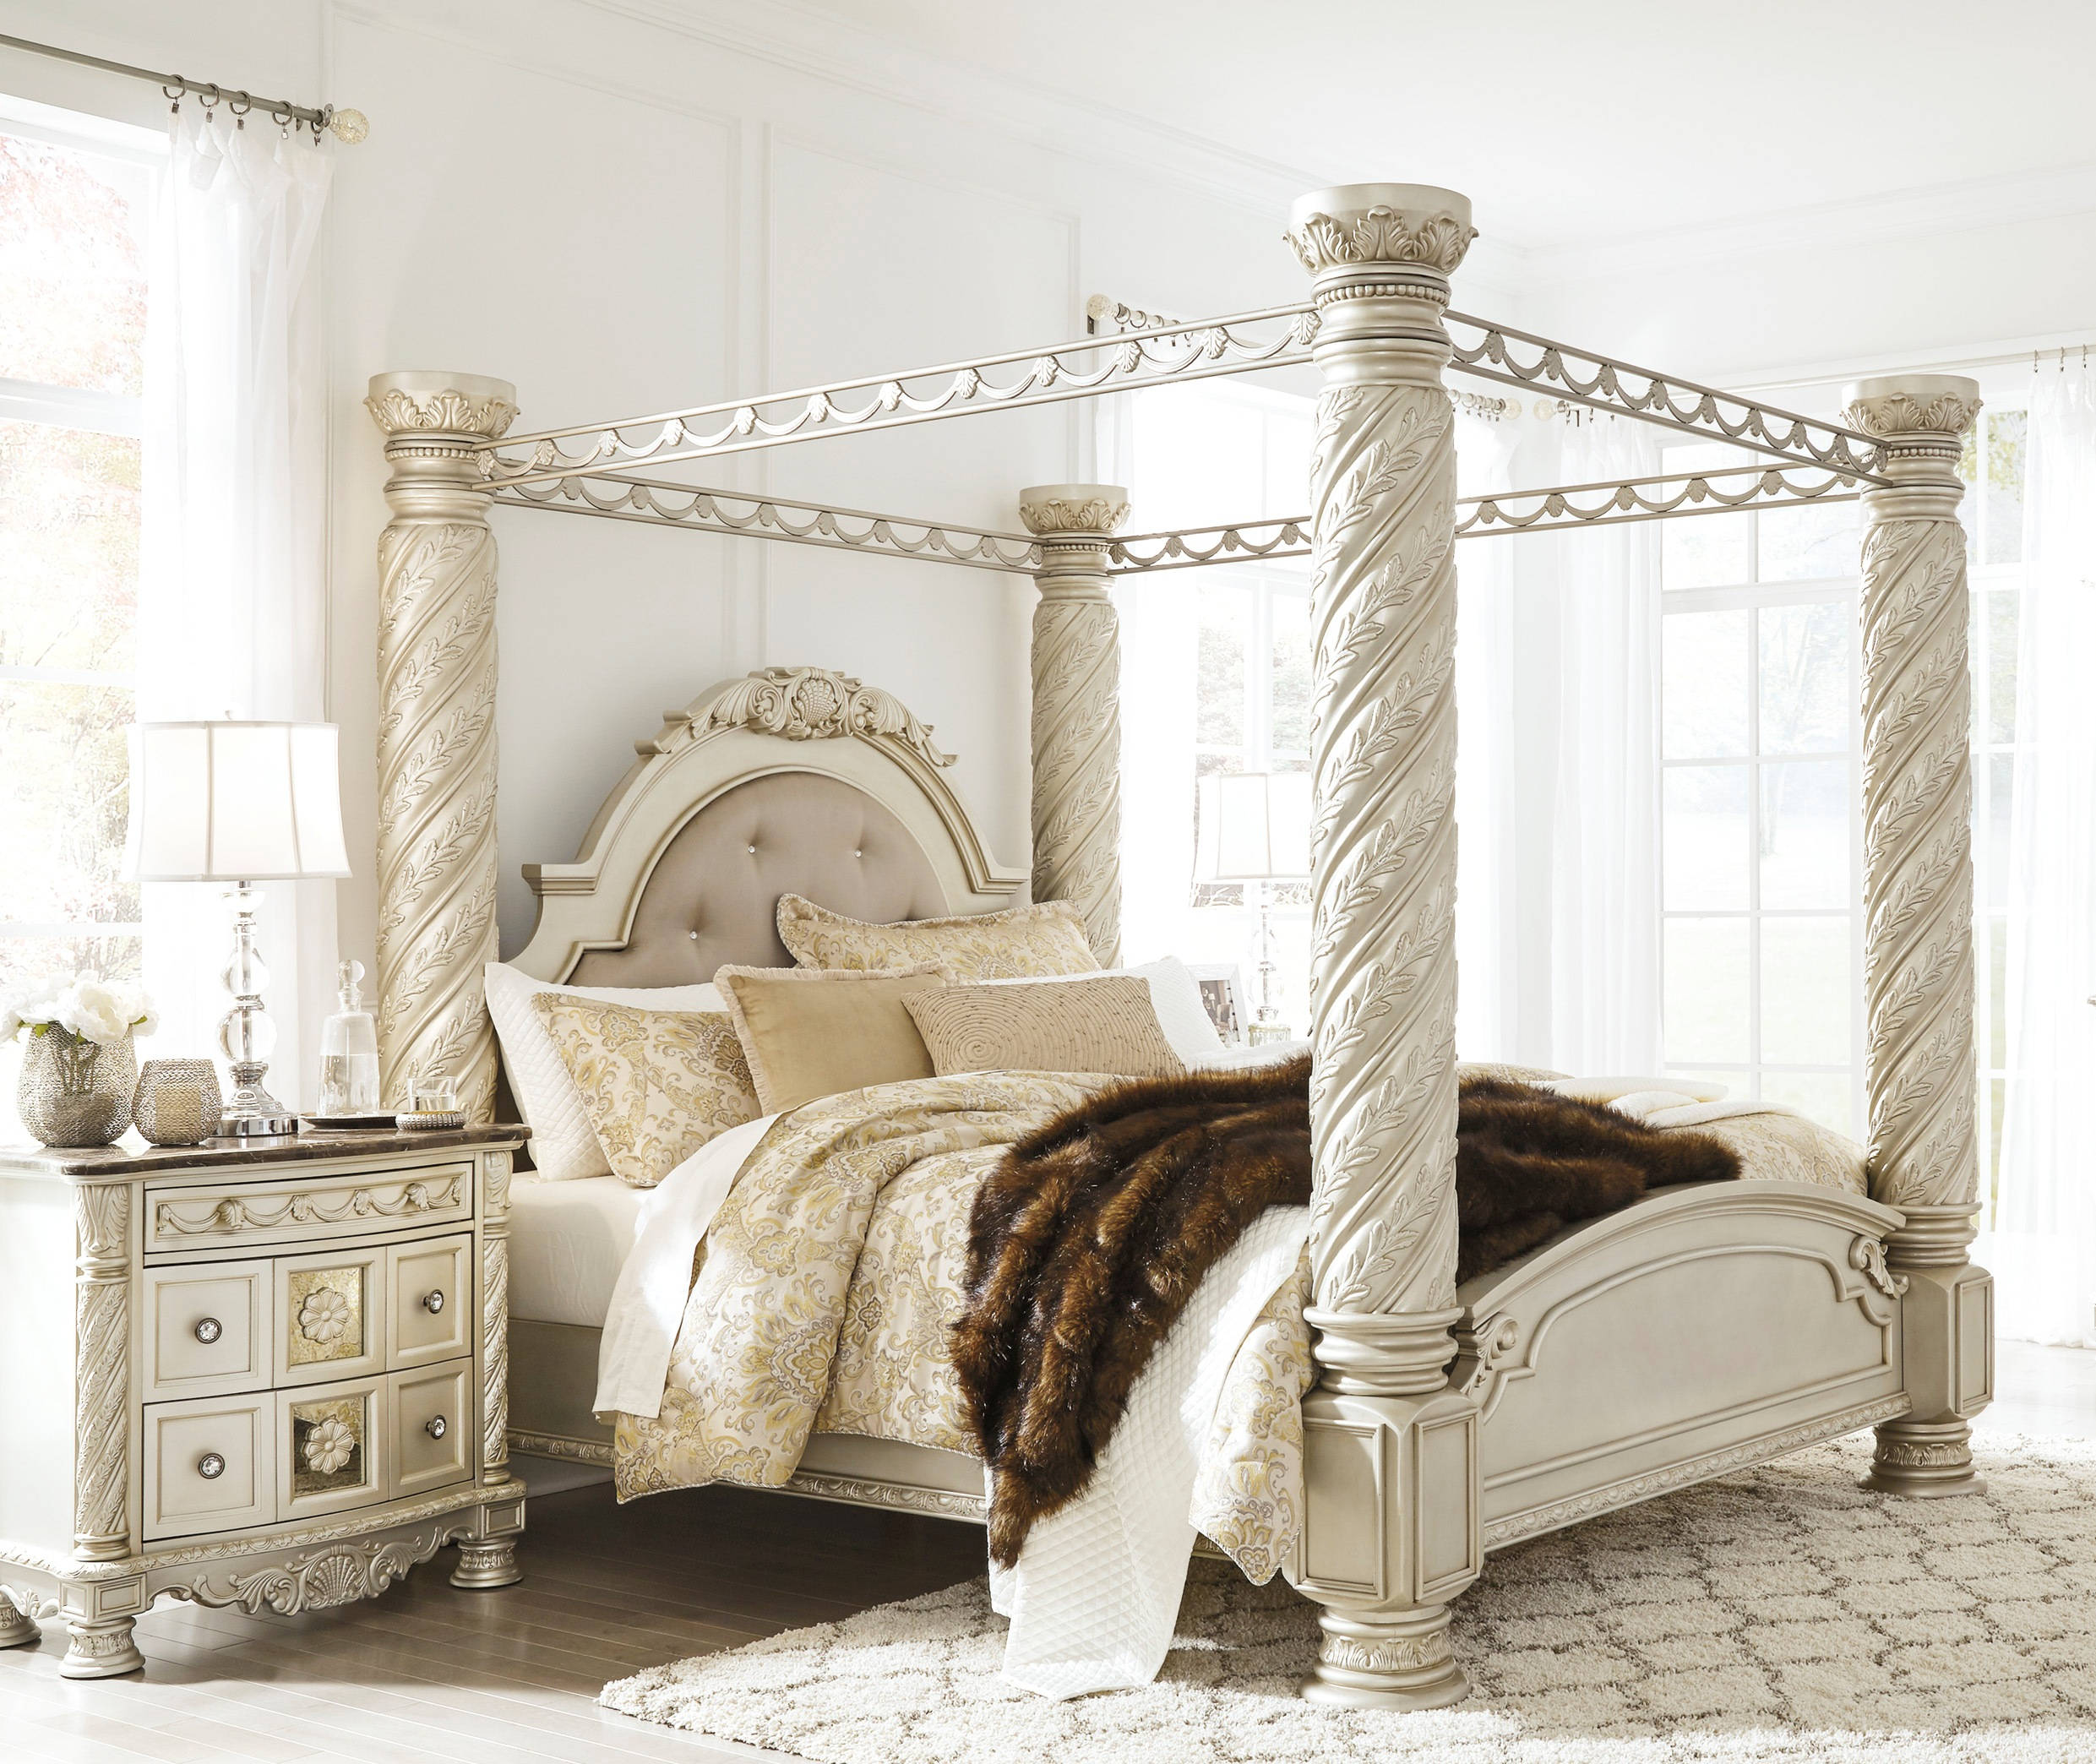 Ashley Furniture Discontinued: Ashley Furniture Cassimore 2pc Bedroom Set With King